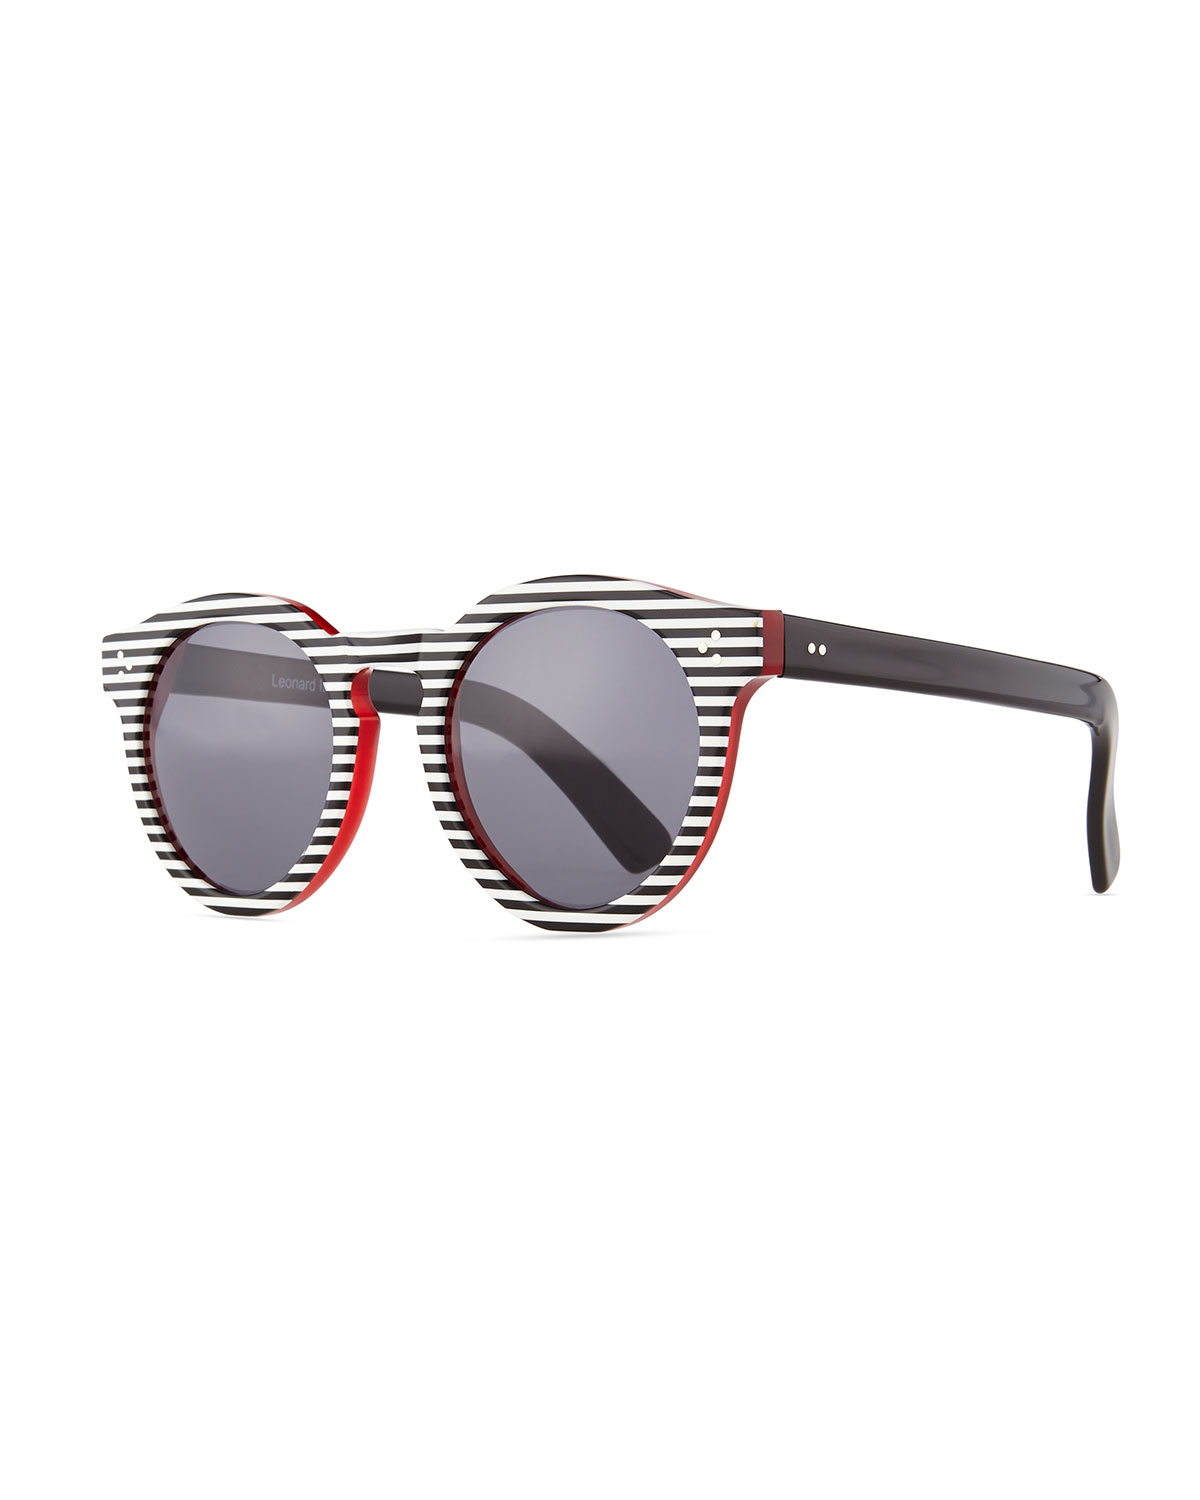 Illesteva Leonard II Striped Sunglasses, Black/White, Black/White Strip